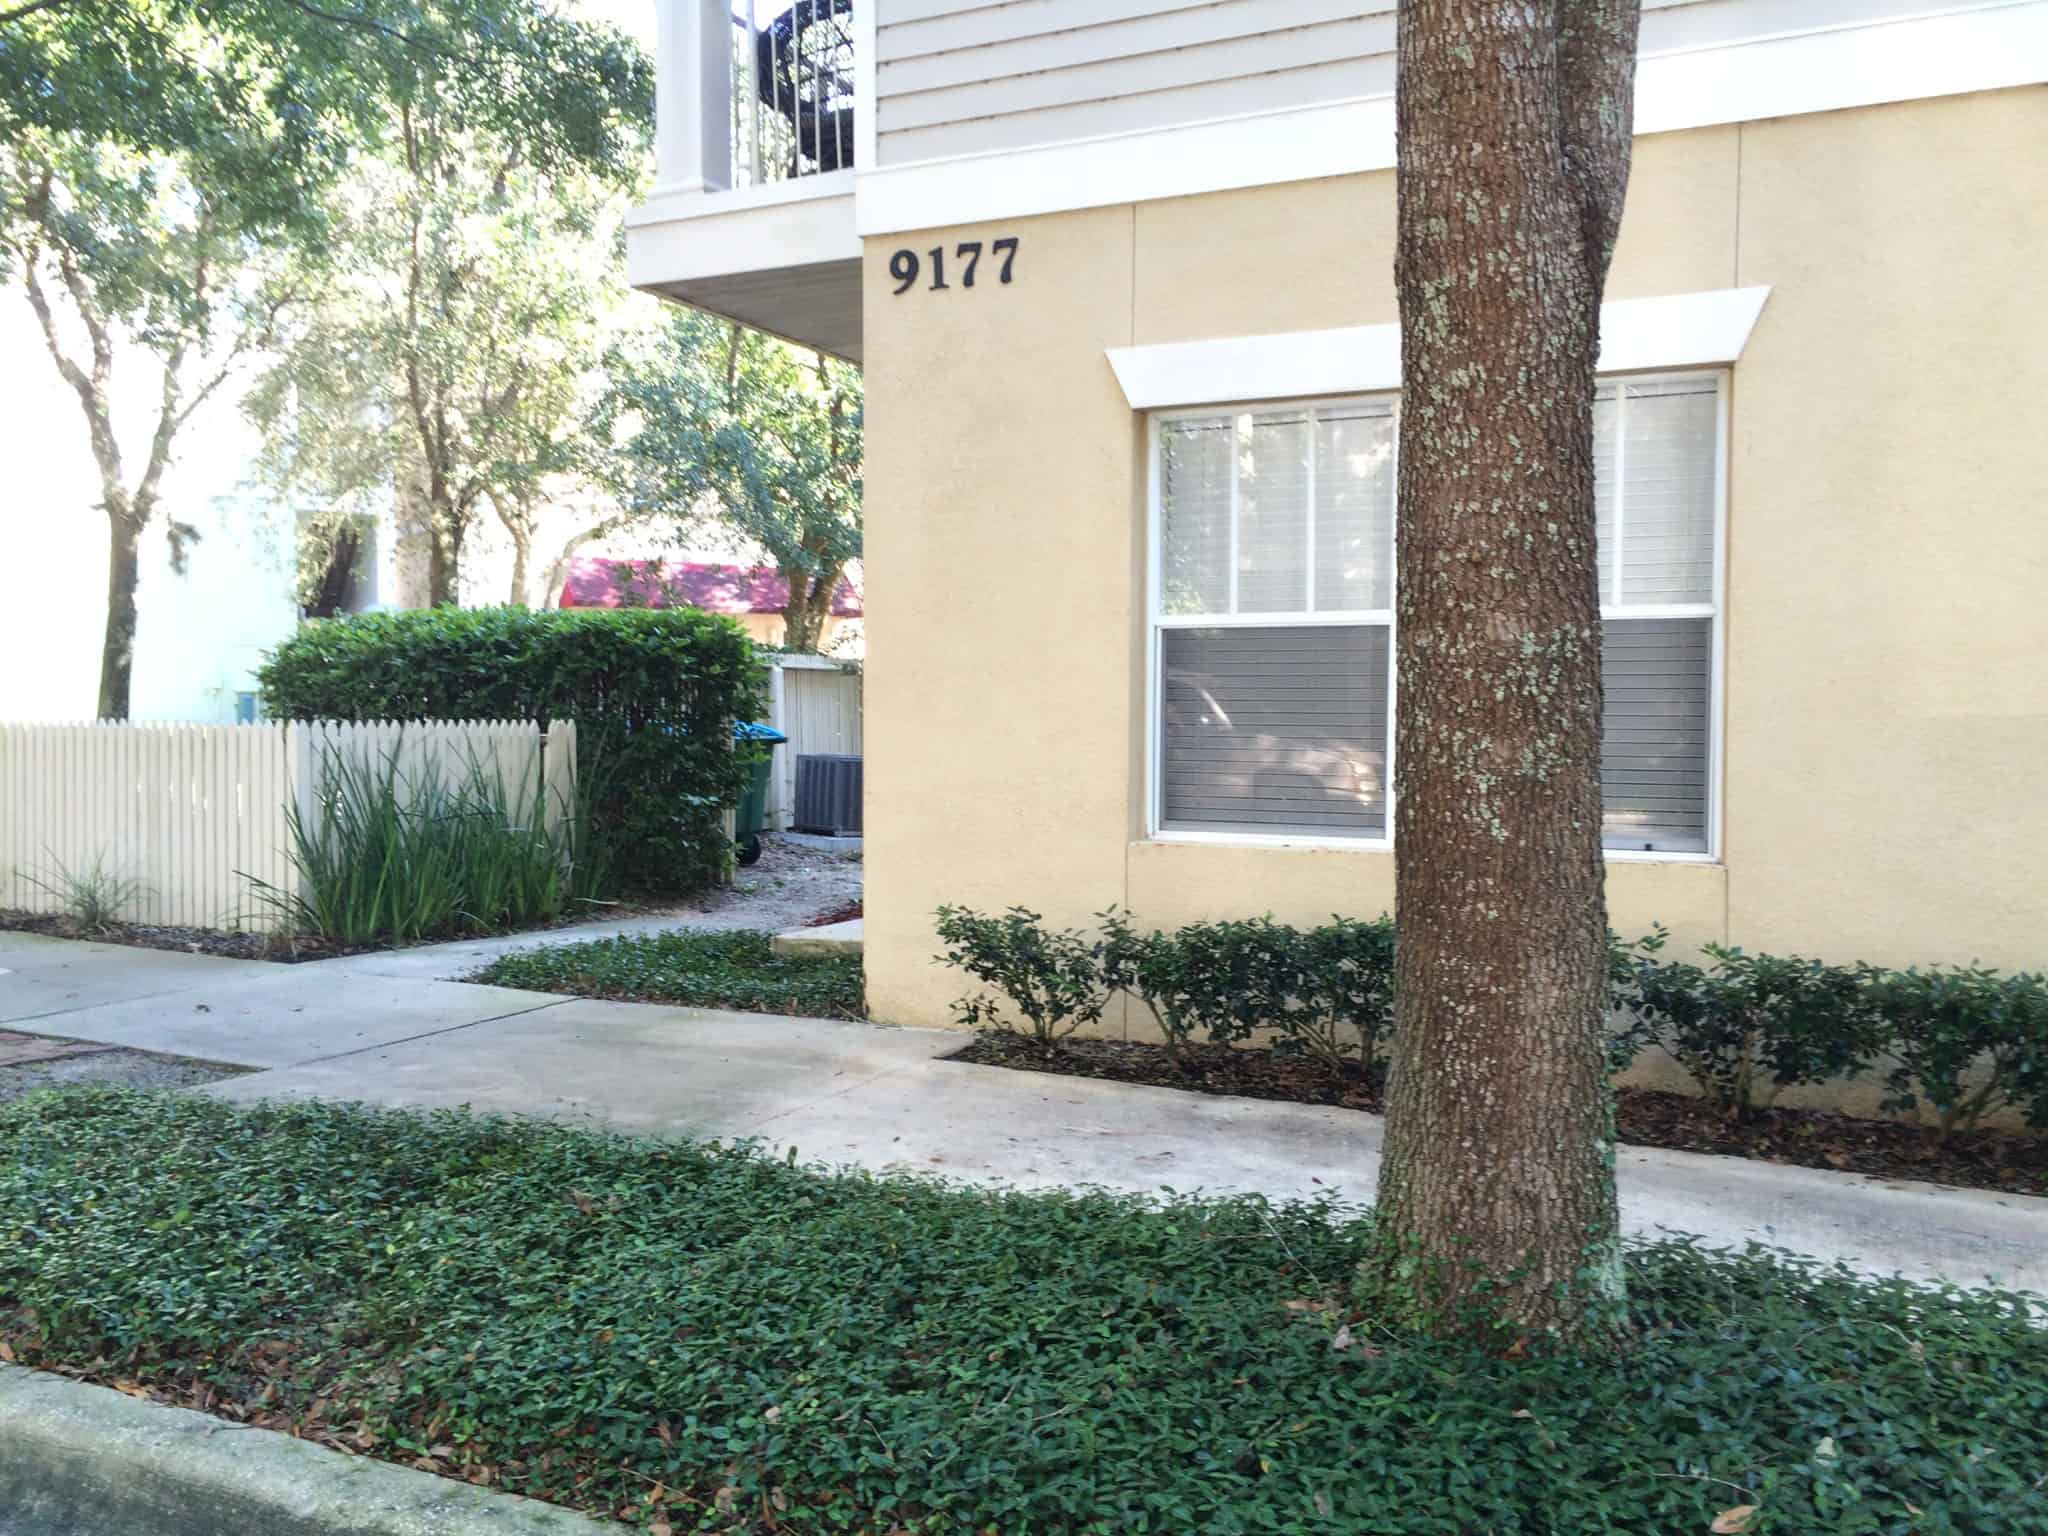 OPEN HOUSE at Haile Village Condo – Sunday 12/7/14